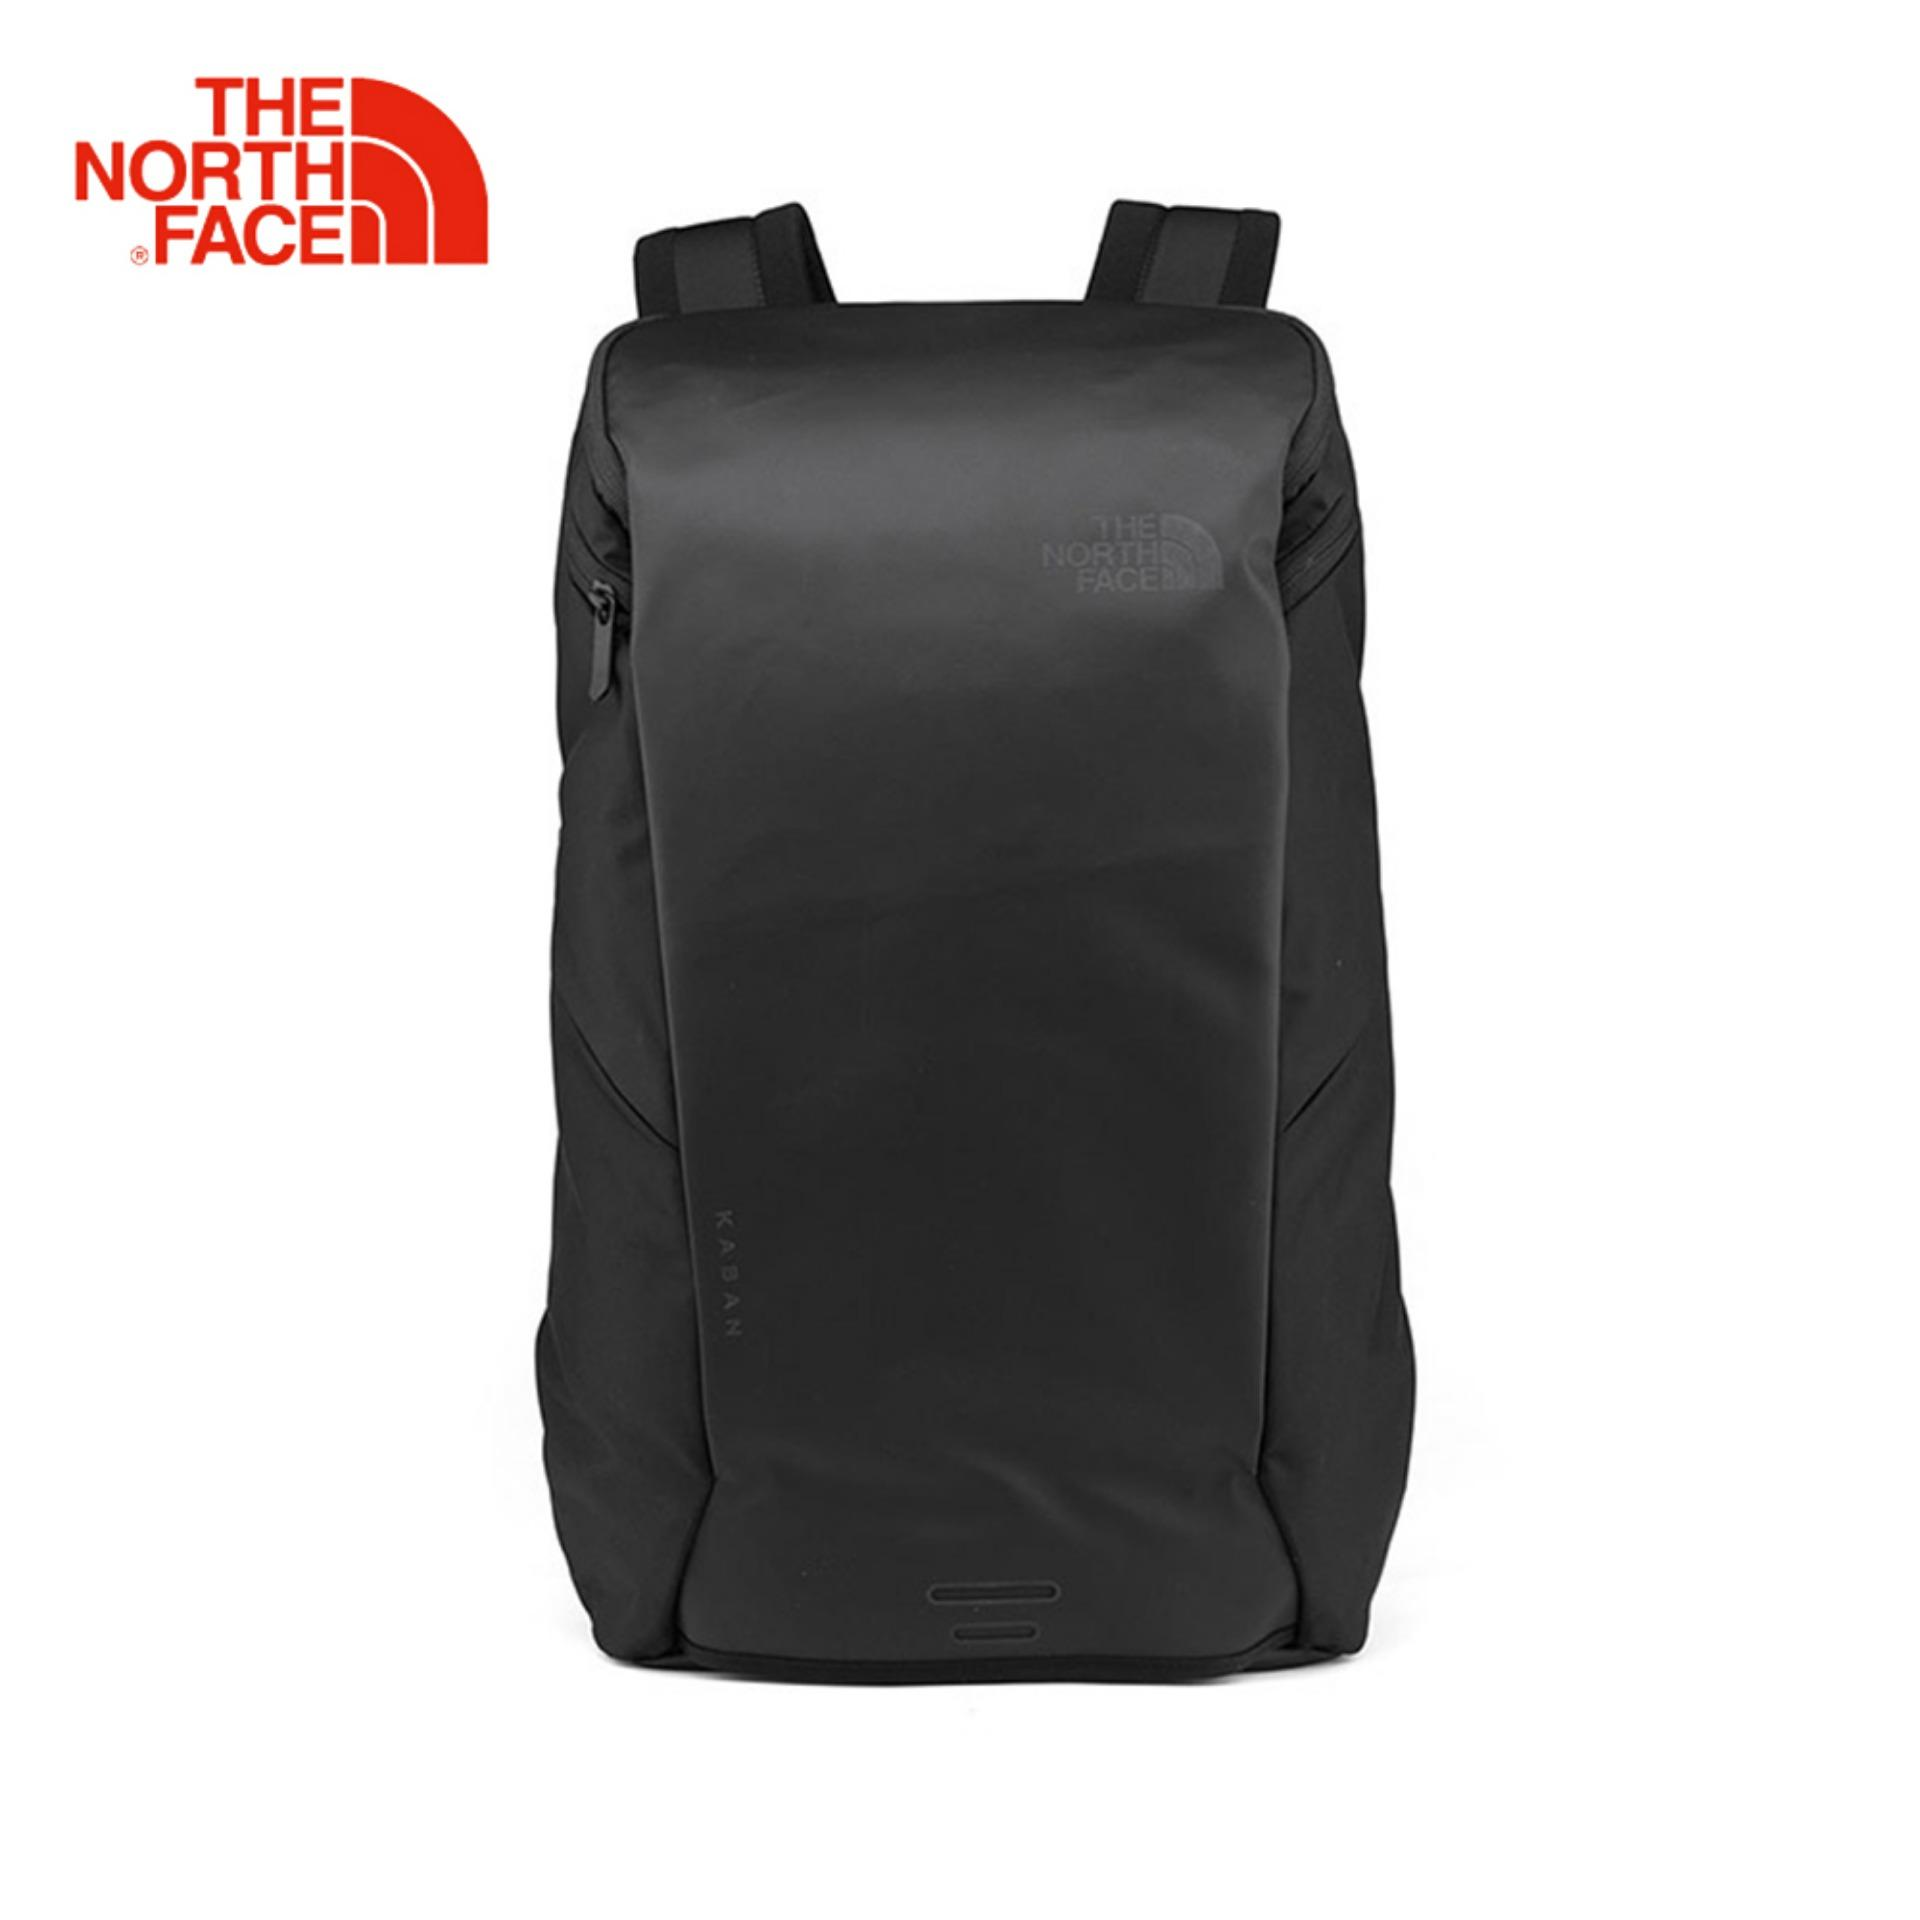 00bb8c2d8 The North Face Kaban 26L Comfortable Padded FlexVent™ Laptop Tablet  Reflective Backpack